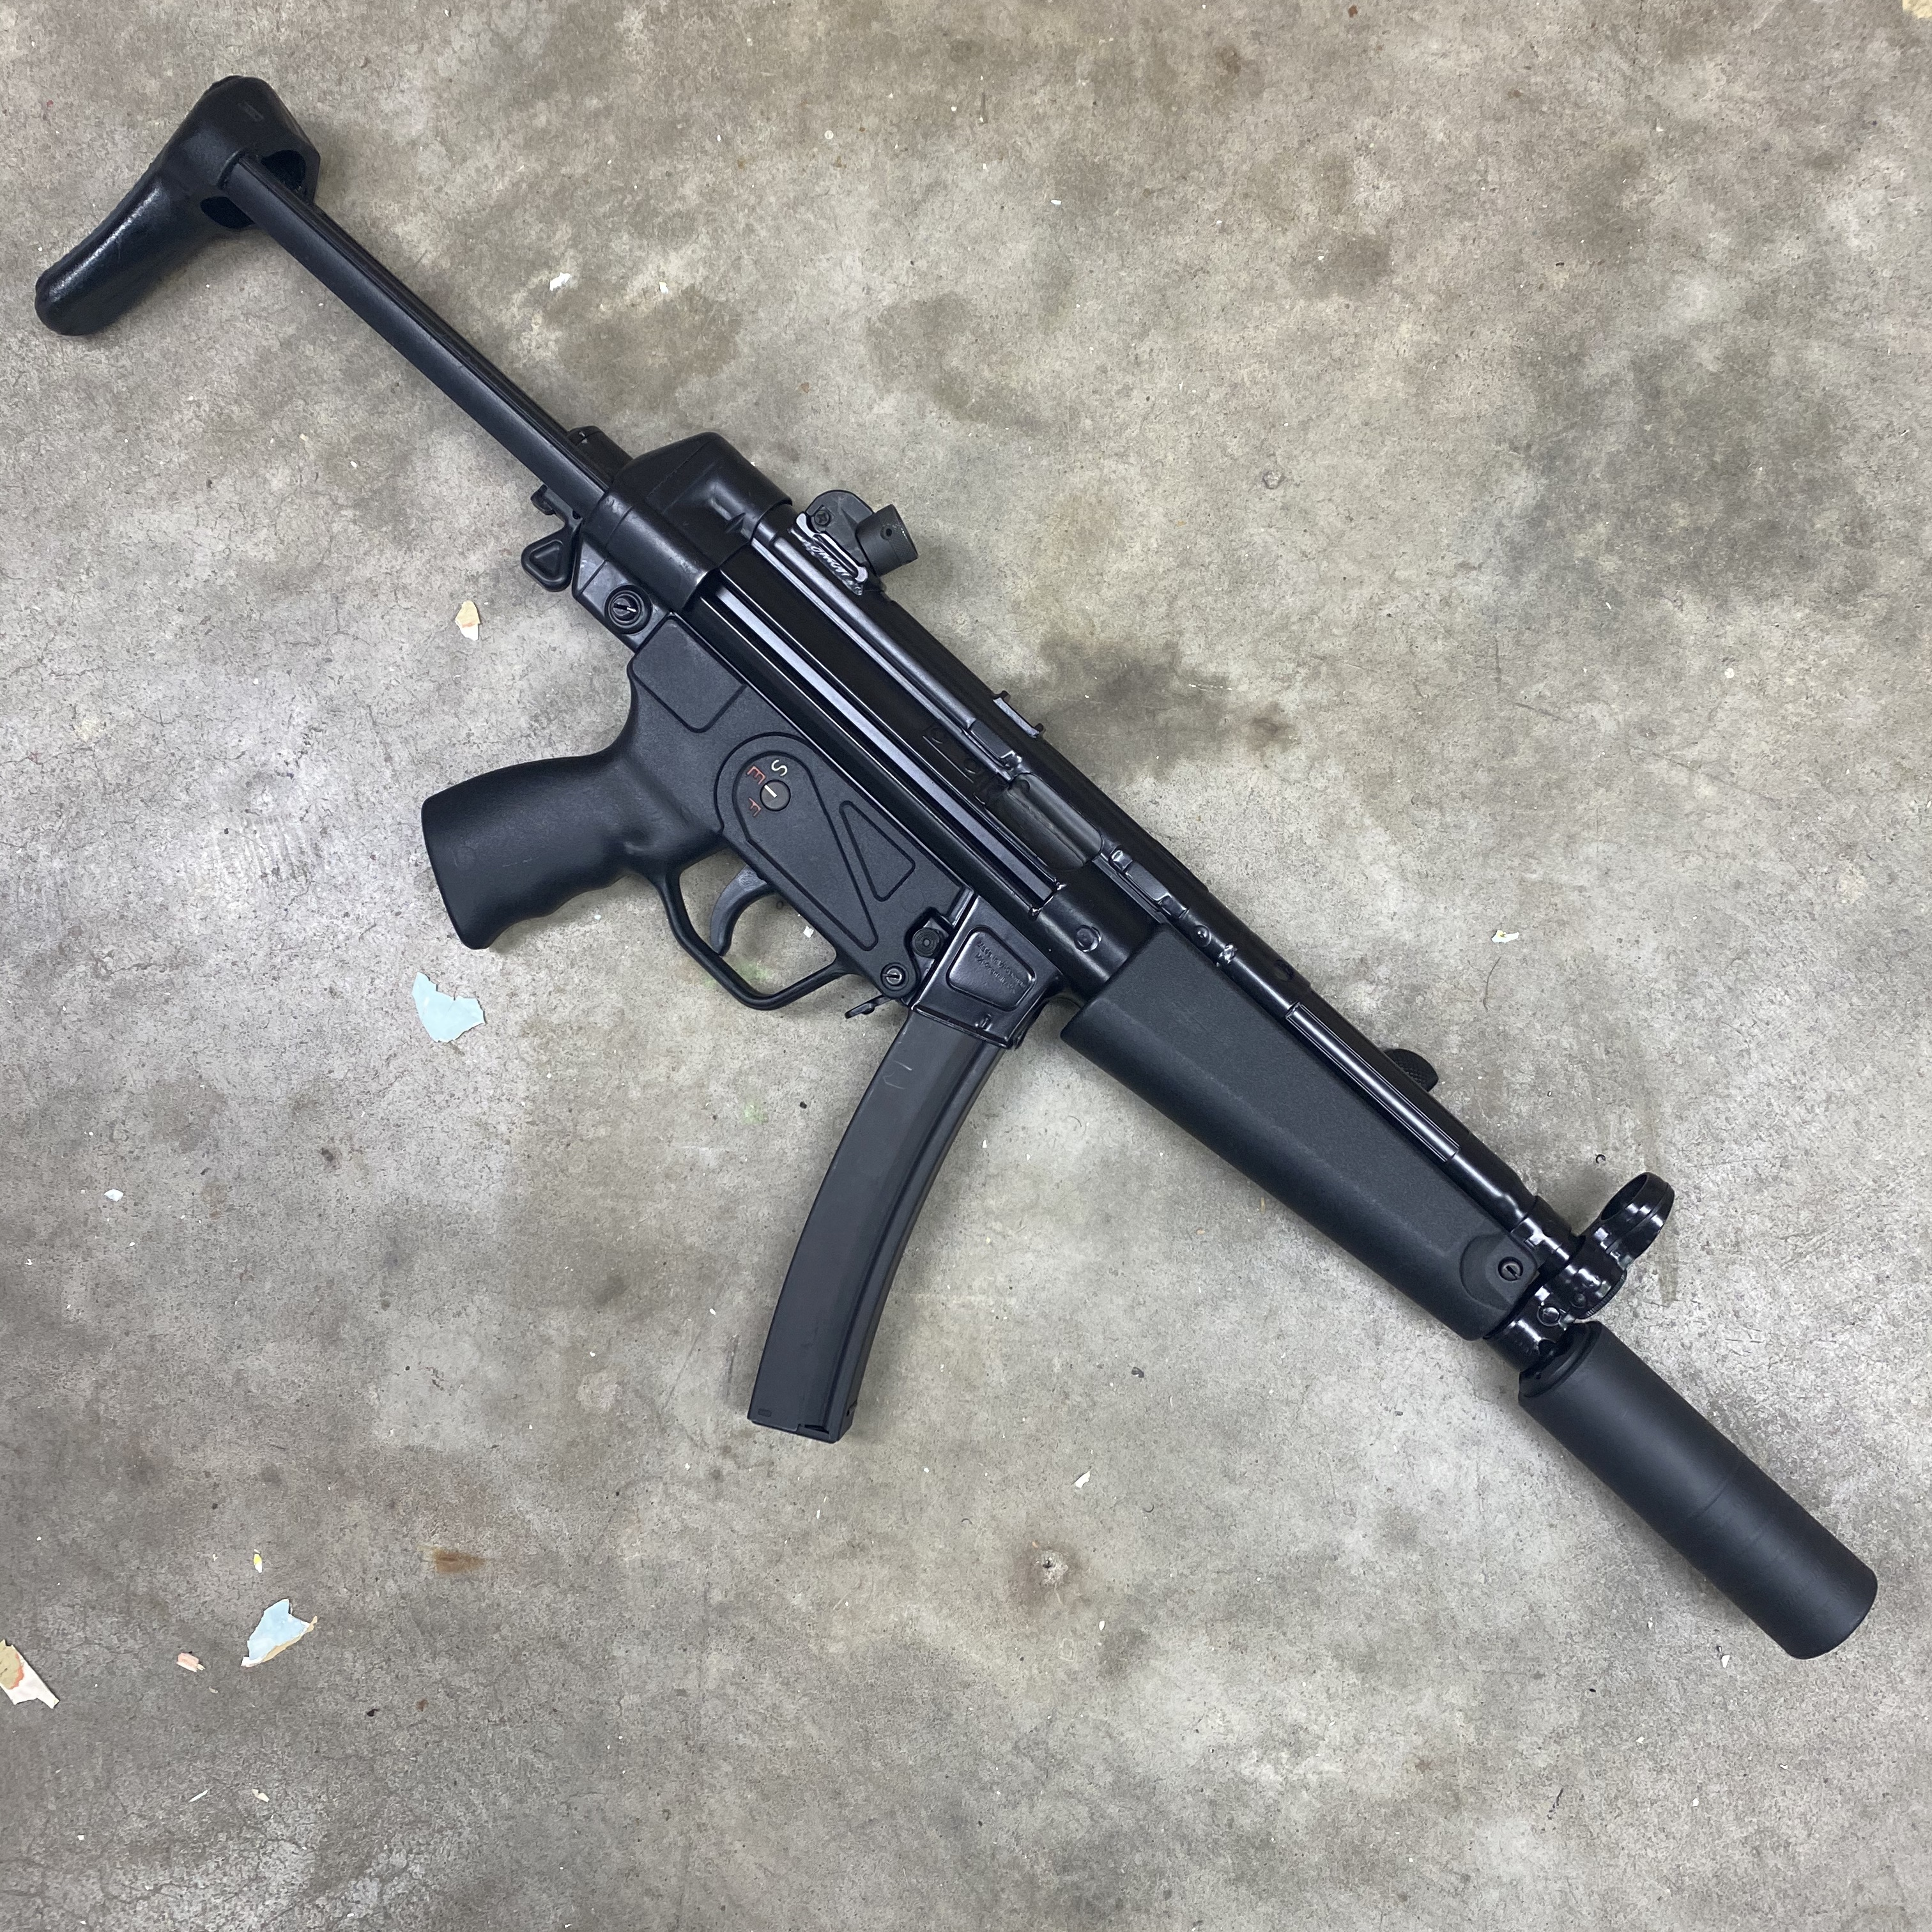 Fedex man delivered my MP5-photo-may-21-3-05-43-pm.jpg